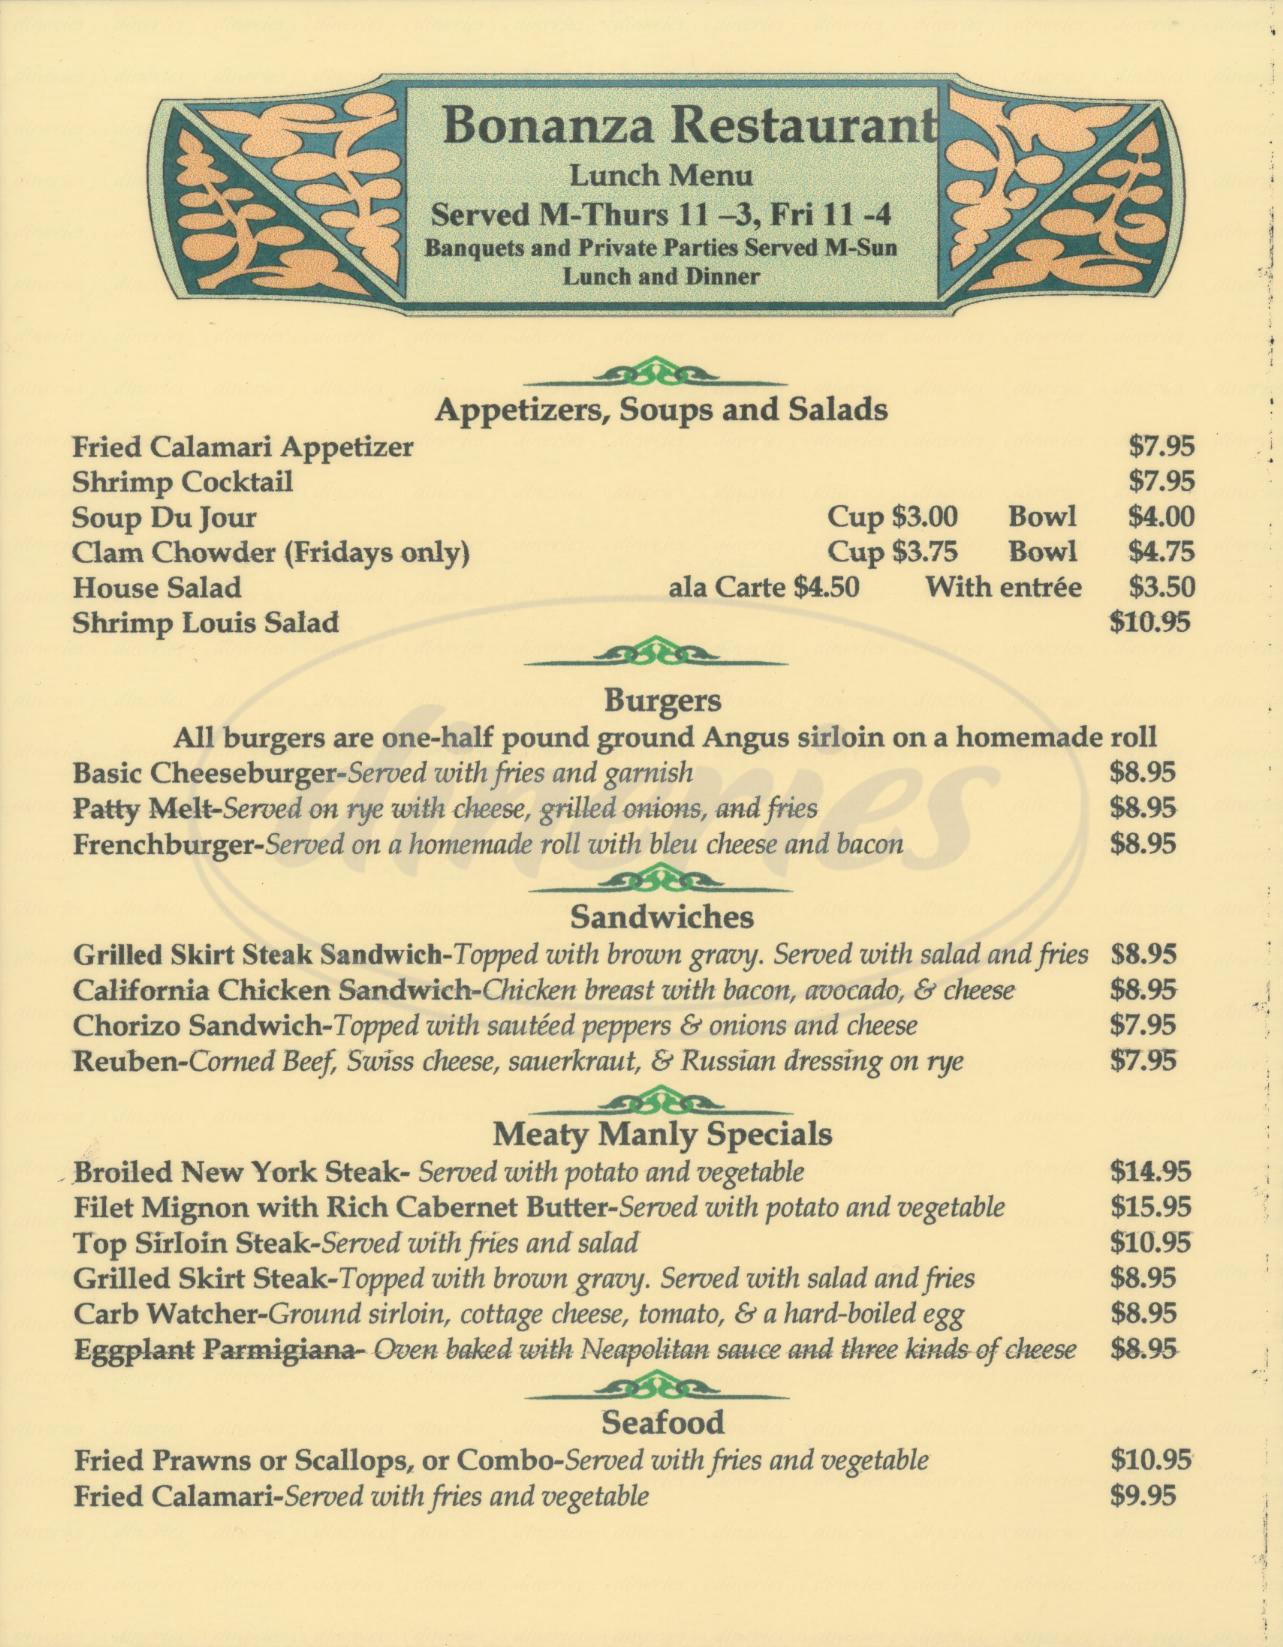 menu for Bonanza Restaurant